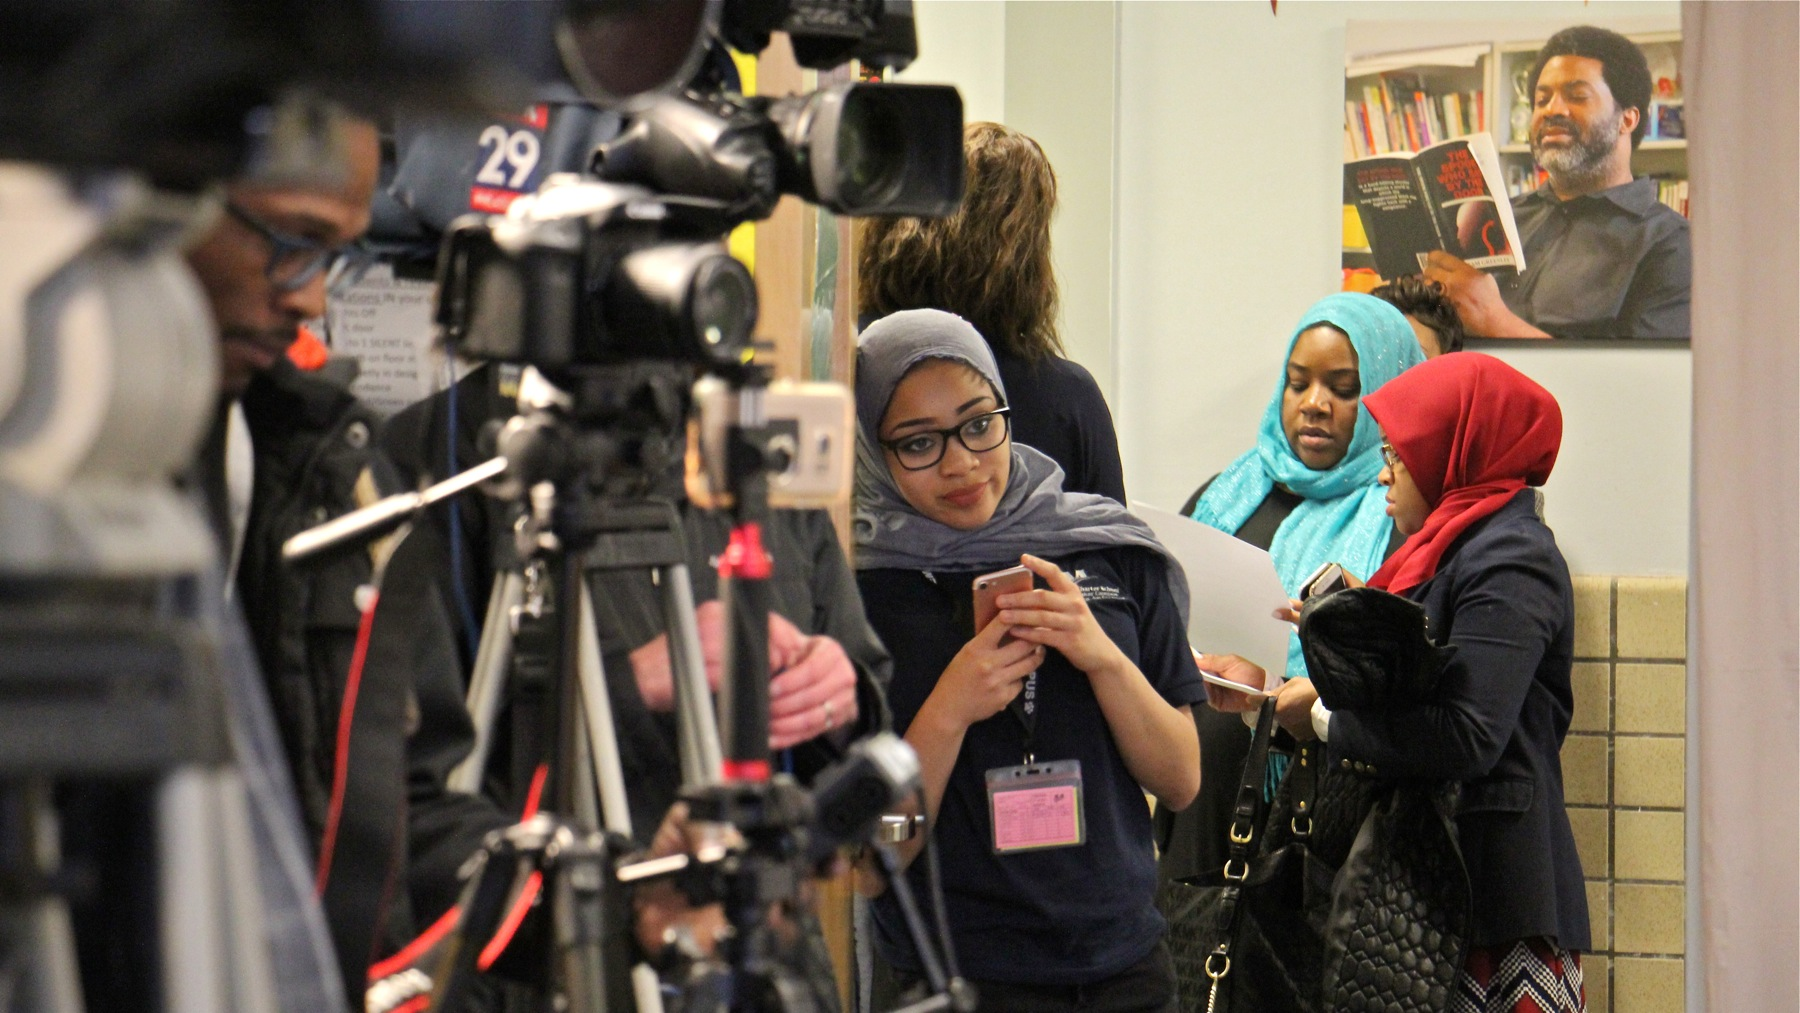 Nasihah Thompson-King, a Mastery Shoemaker Charter School basketball player who was benched because she had not obtained a waiver to wear her hijab, looks into a room full of media representatives before a press conference at her school.